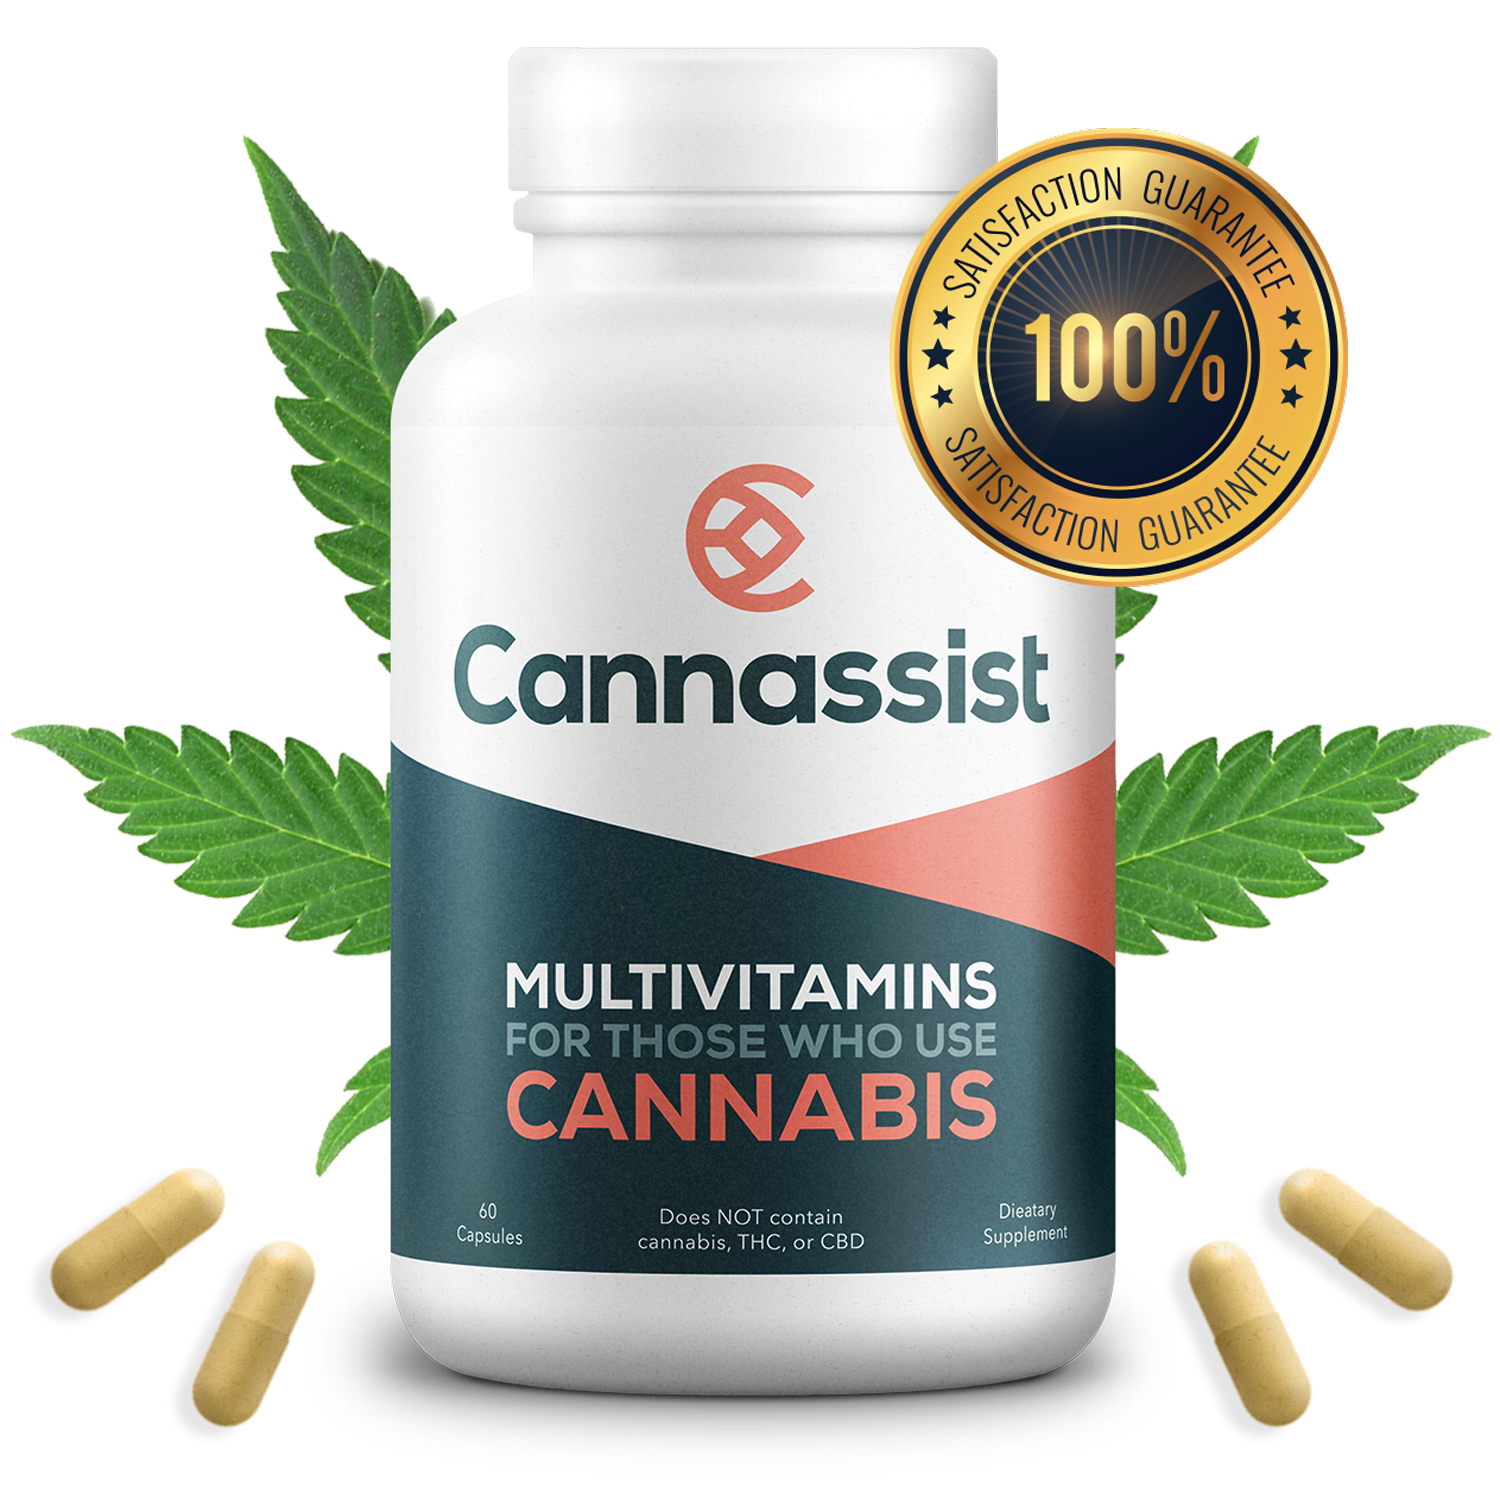 Cannassist Multivitamins